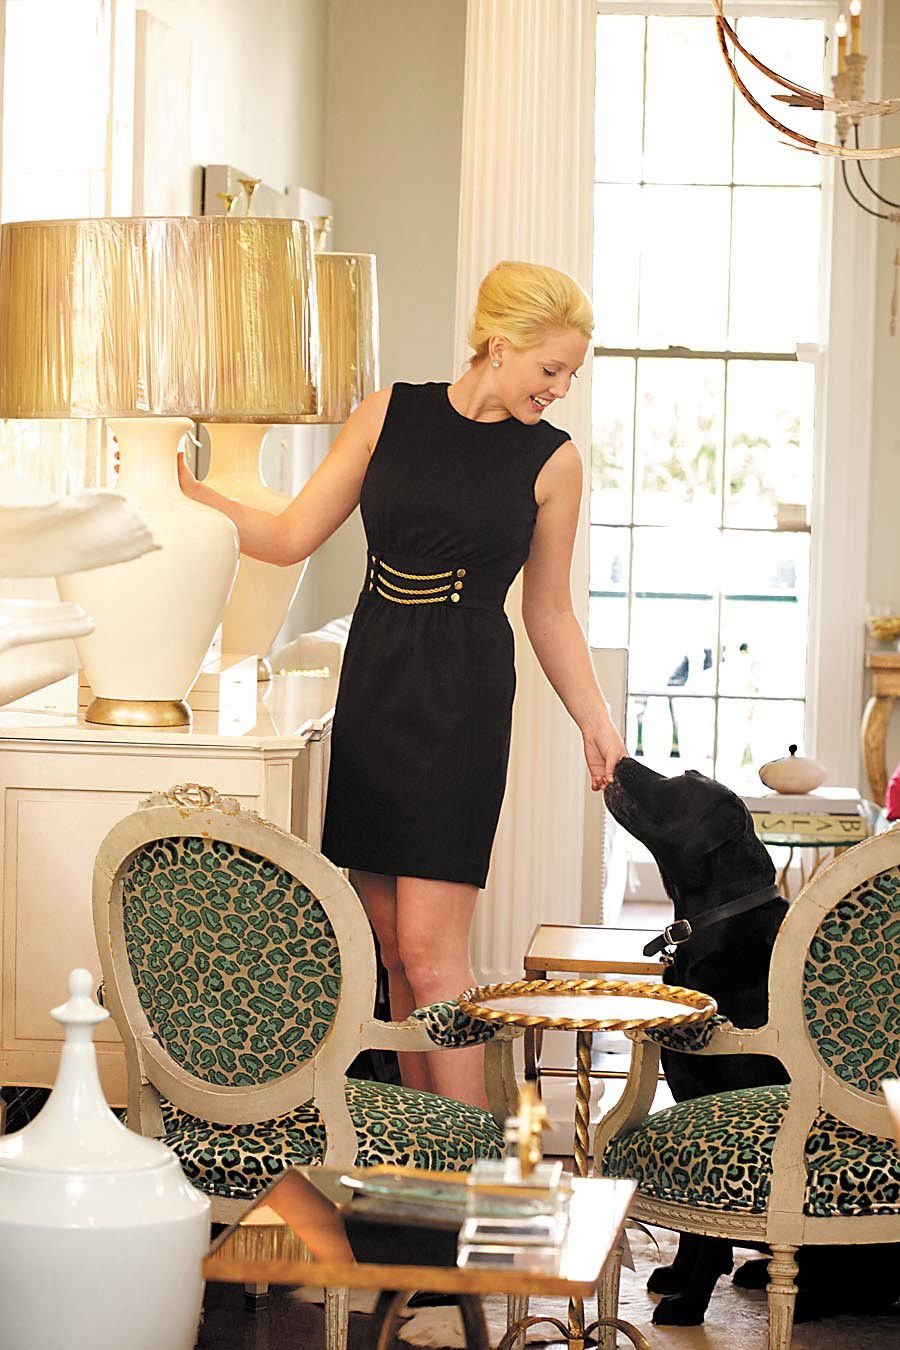 Classic fashion and interior design tips from Rivers Spencer_lowres